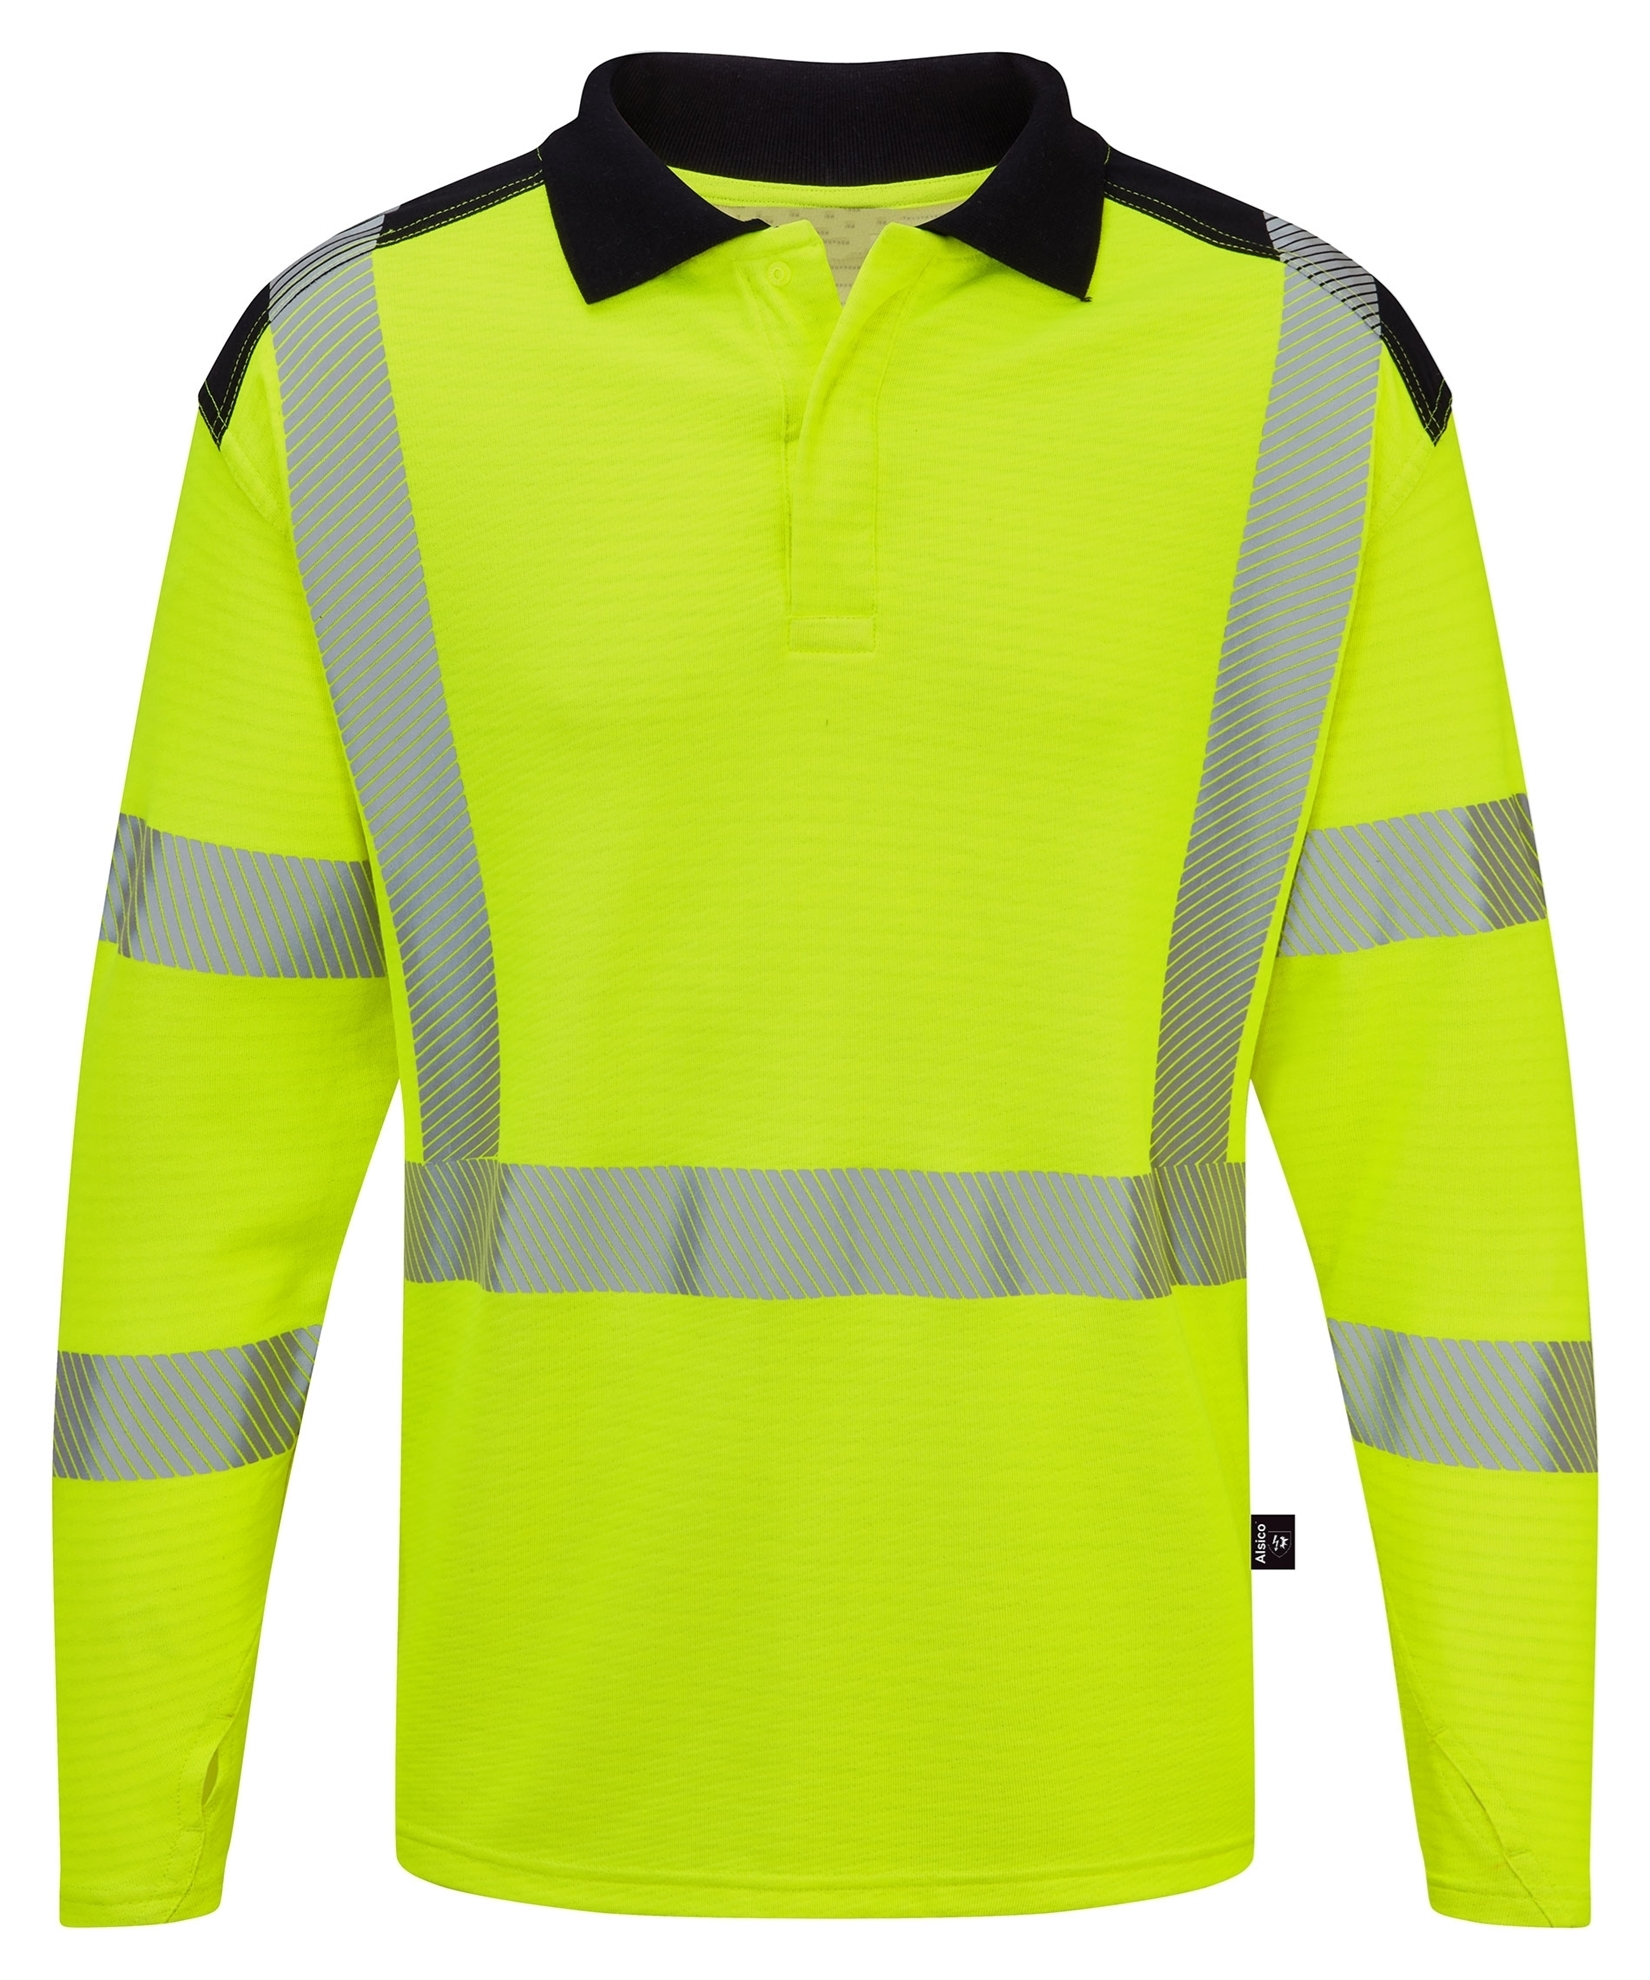 Picture of Hi-Visibility Arc Flash FR Poloshirt - Yellow